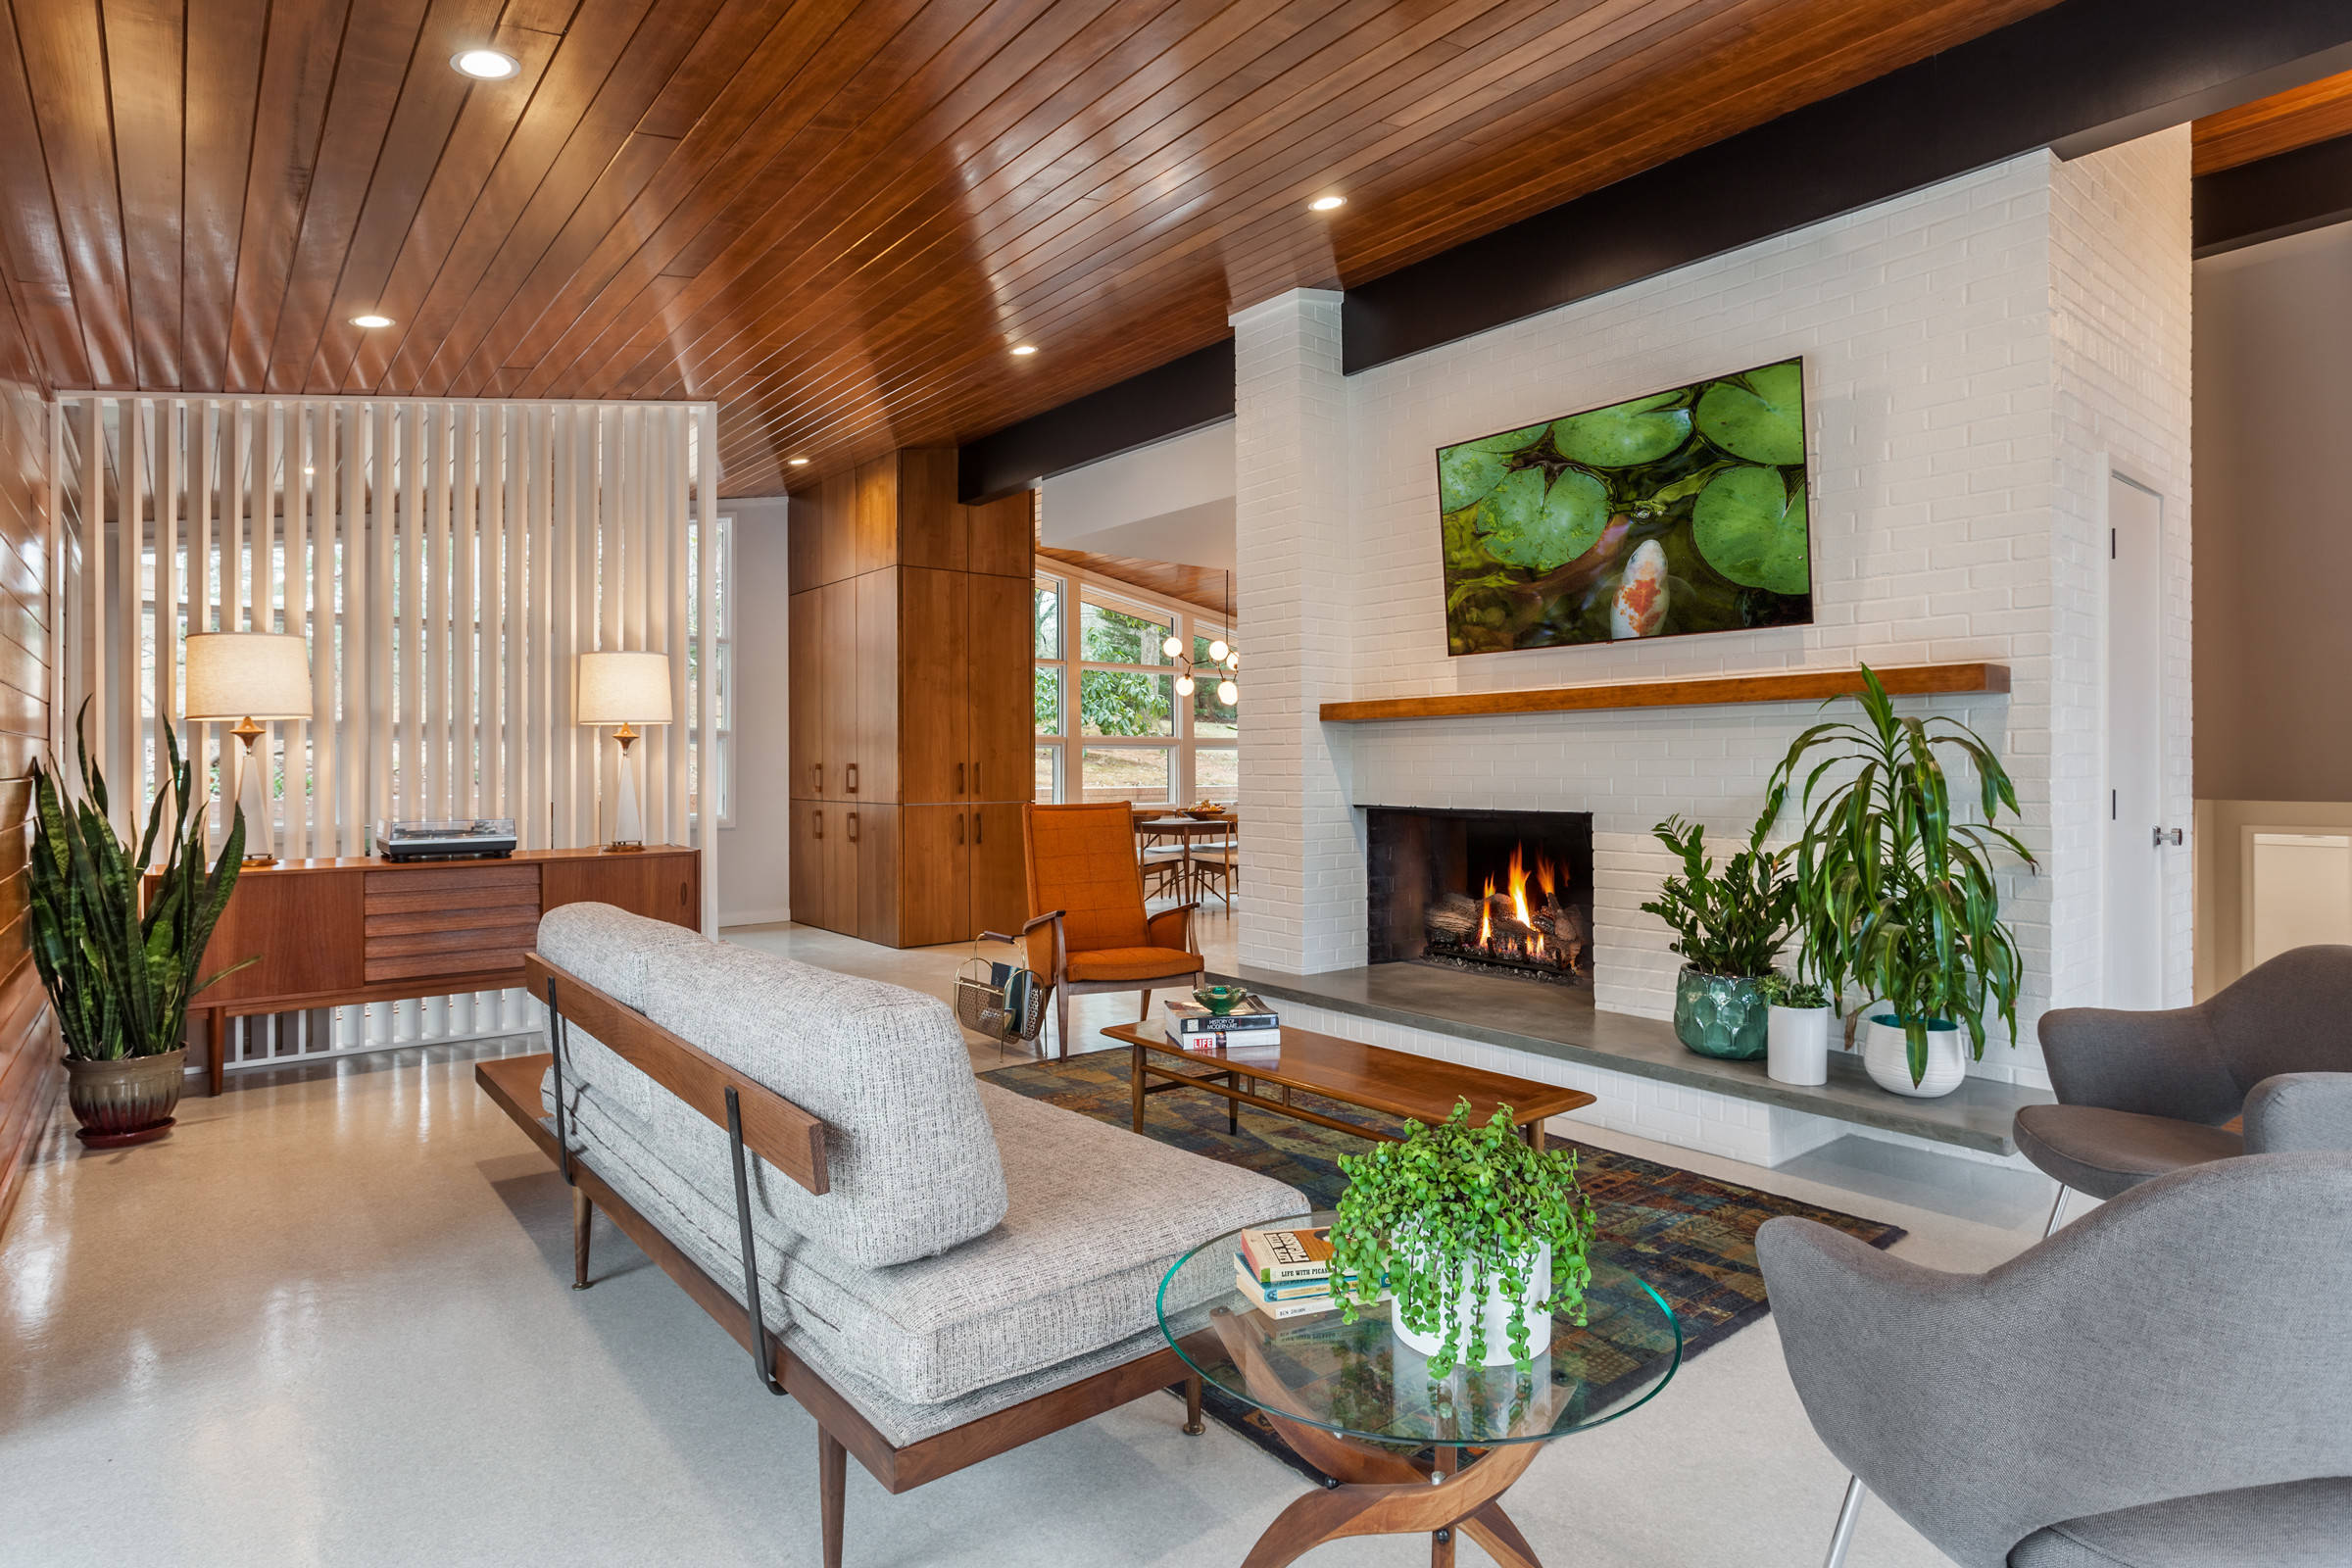 Picture of: 75 Beautiful Mid Century Modern Living Room With A Brick Fireplace Pictures Ideas November 2020 Houzz